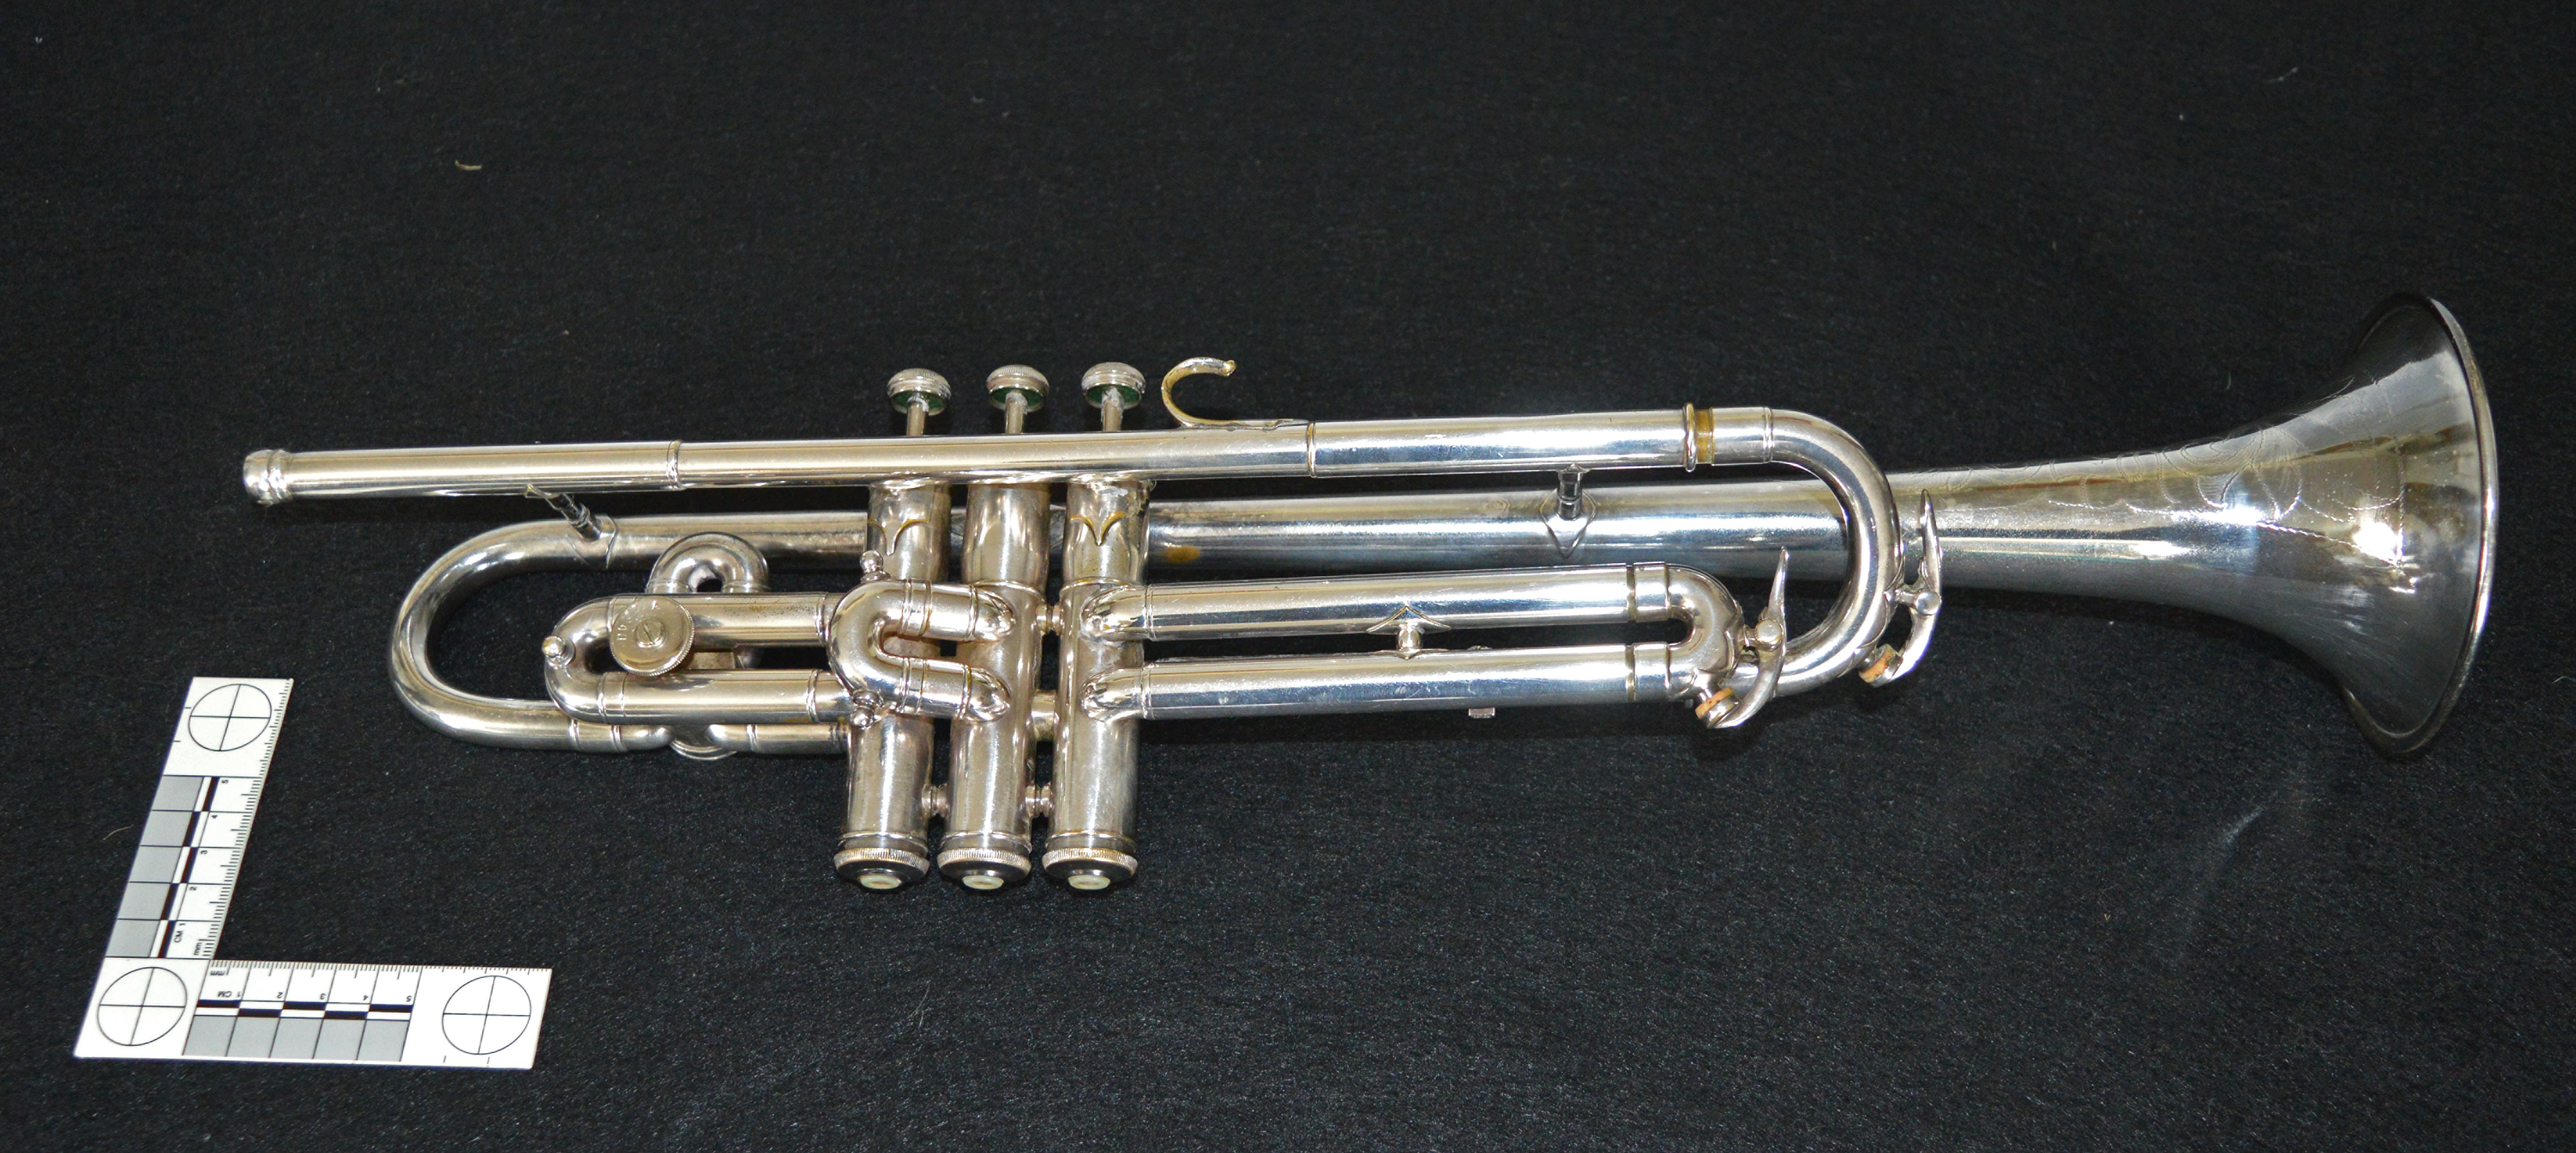 Solving the Trumpet Mystery – Randall Posts